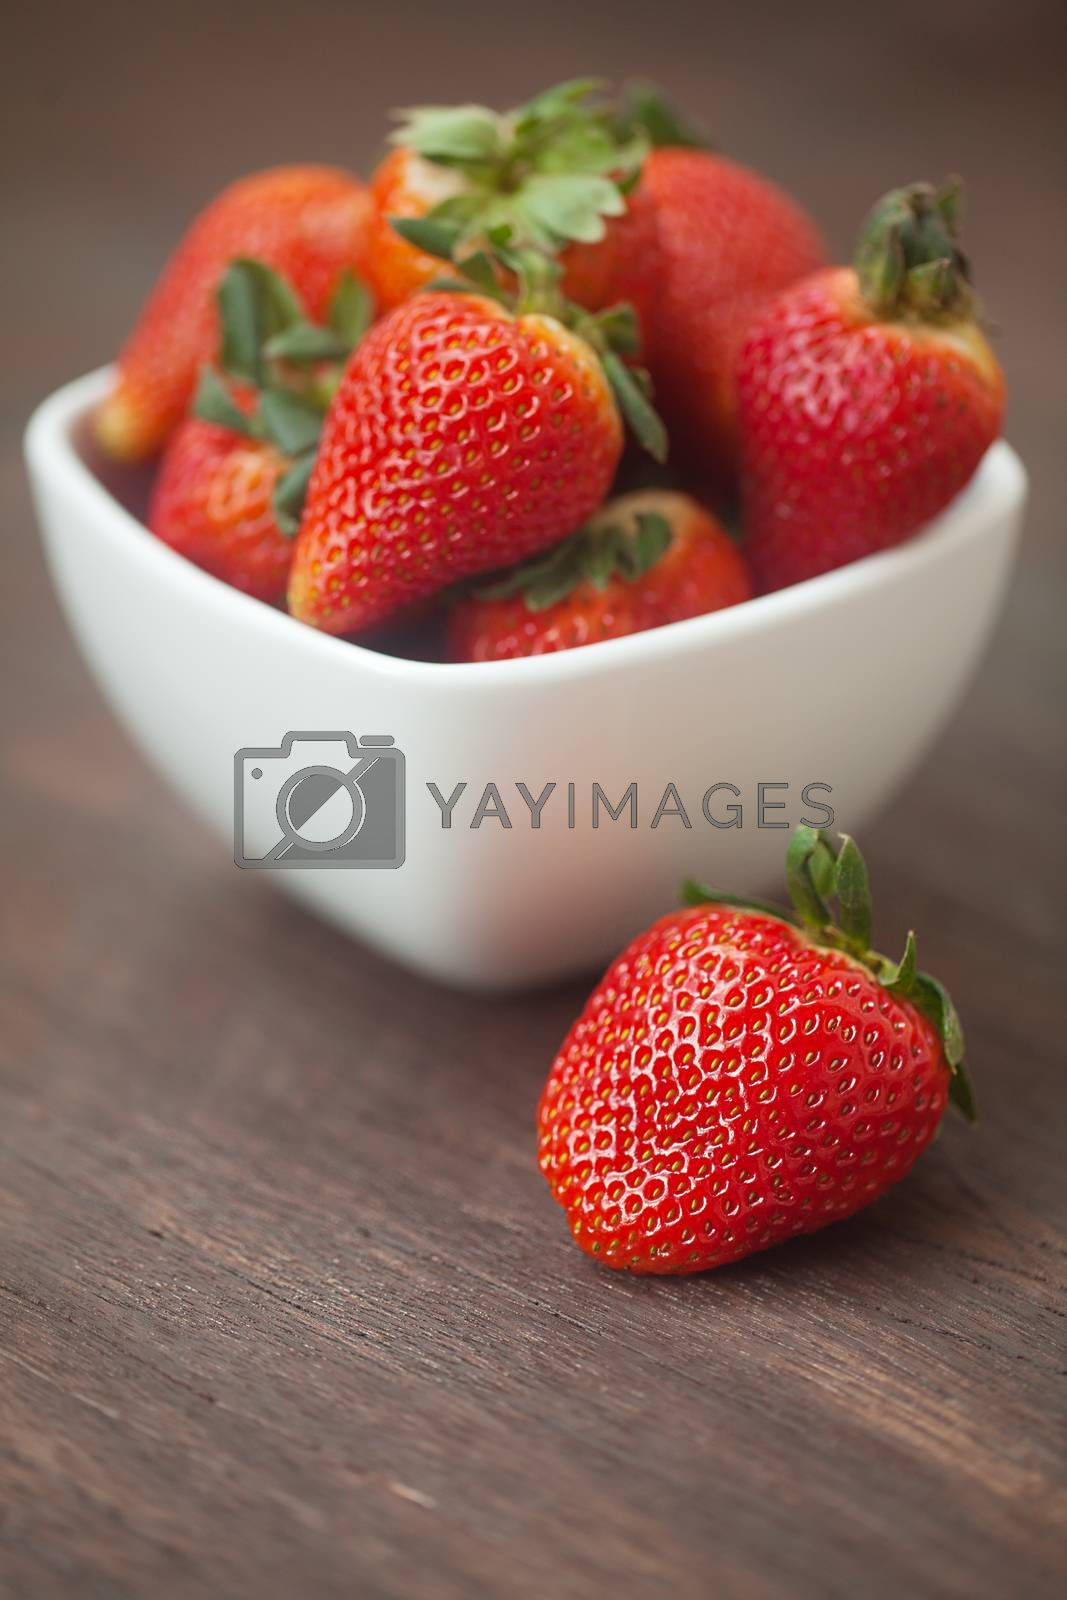 red juicy strawberry in a bowl on a wooden surface